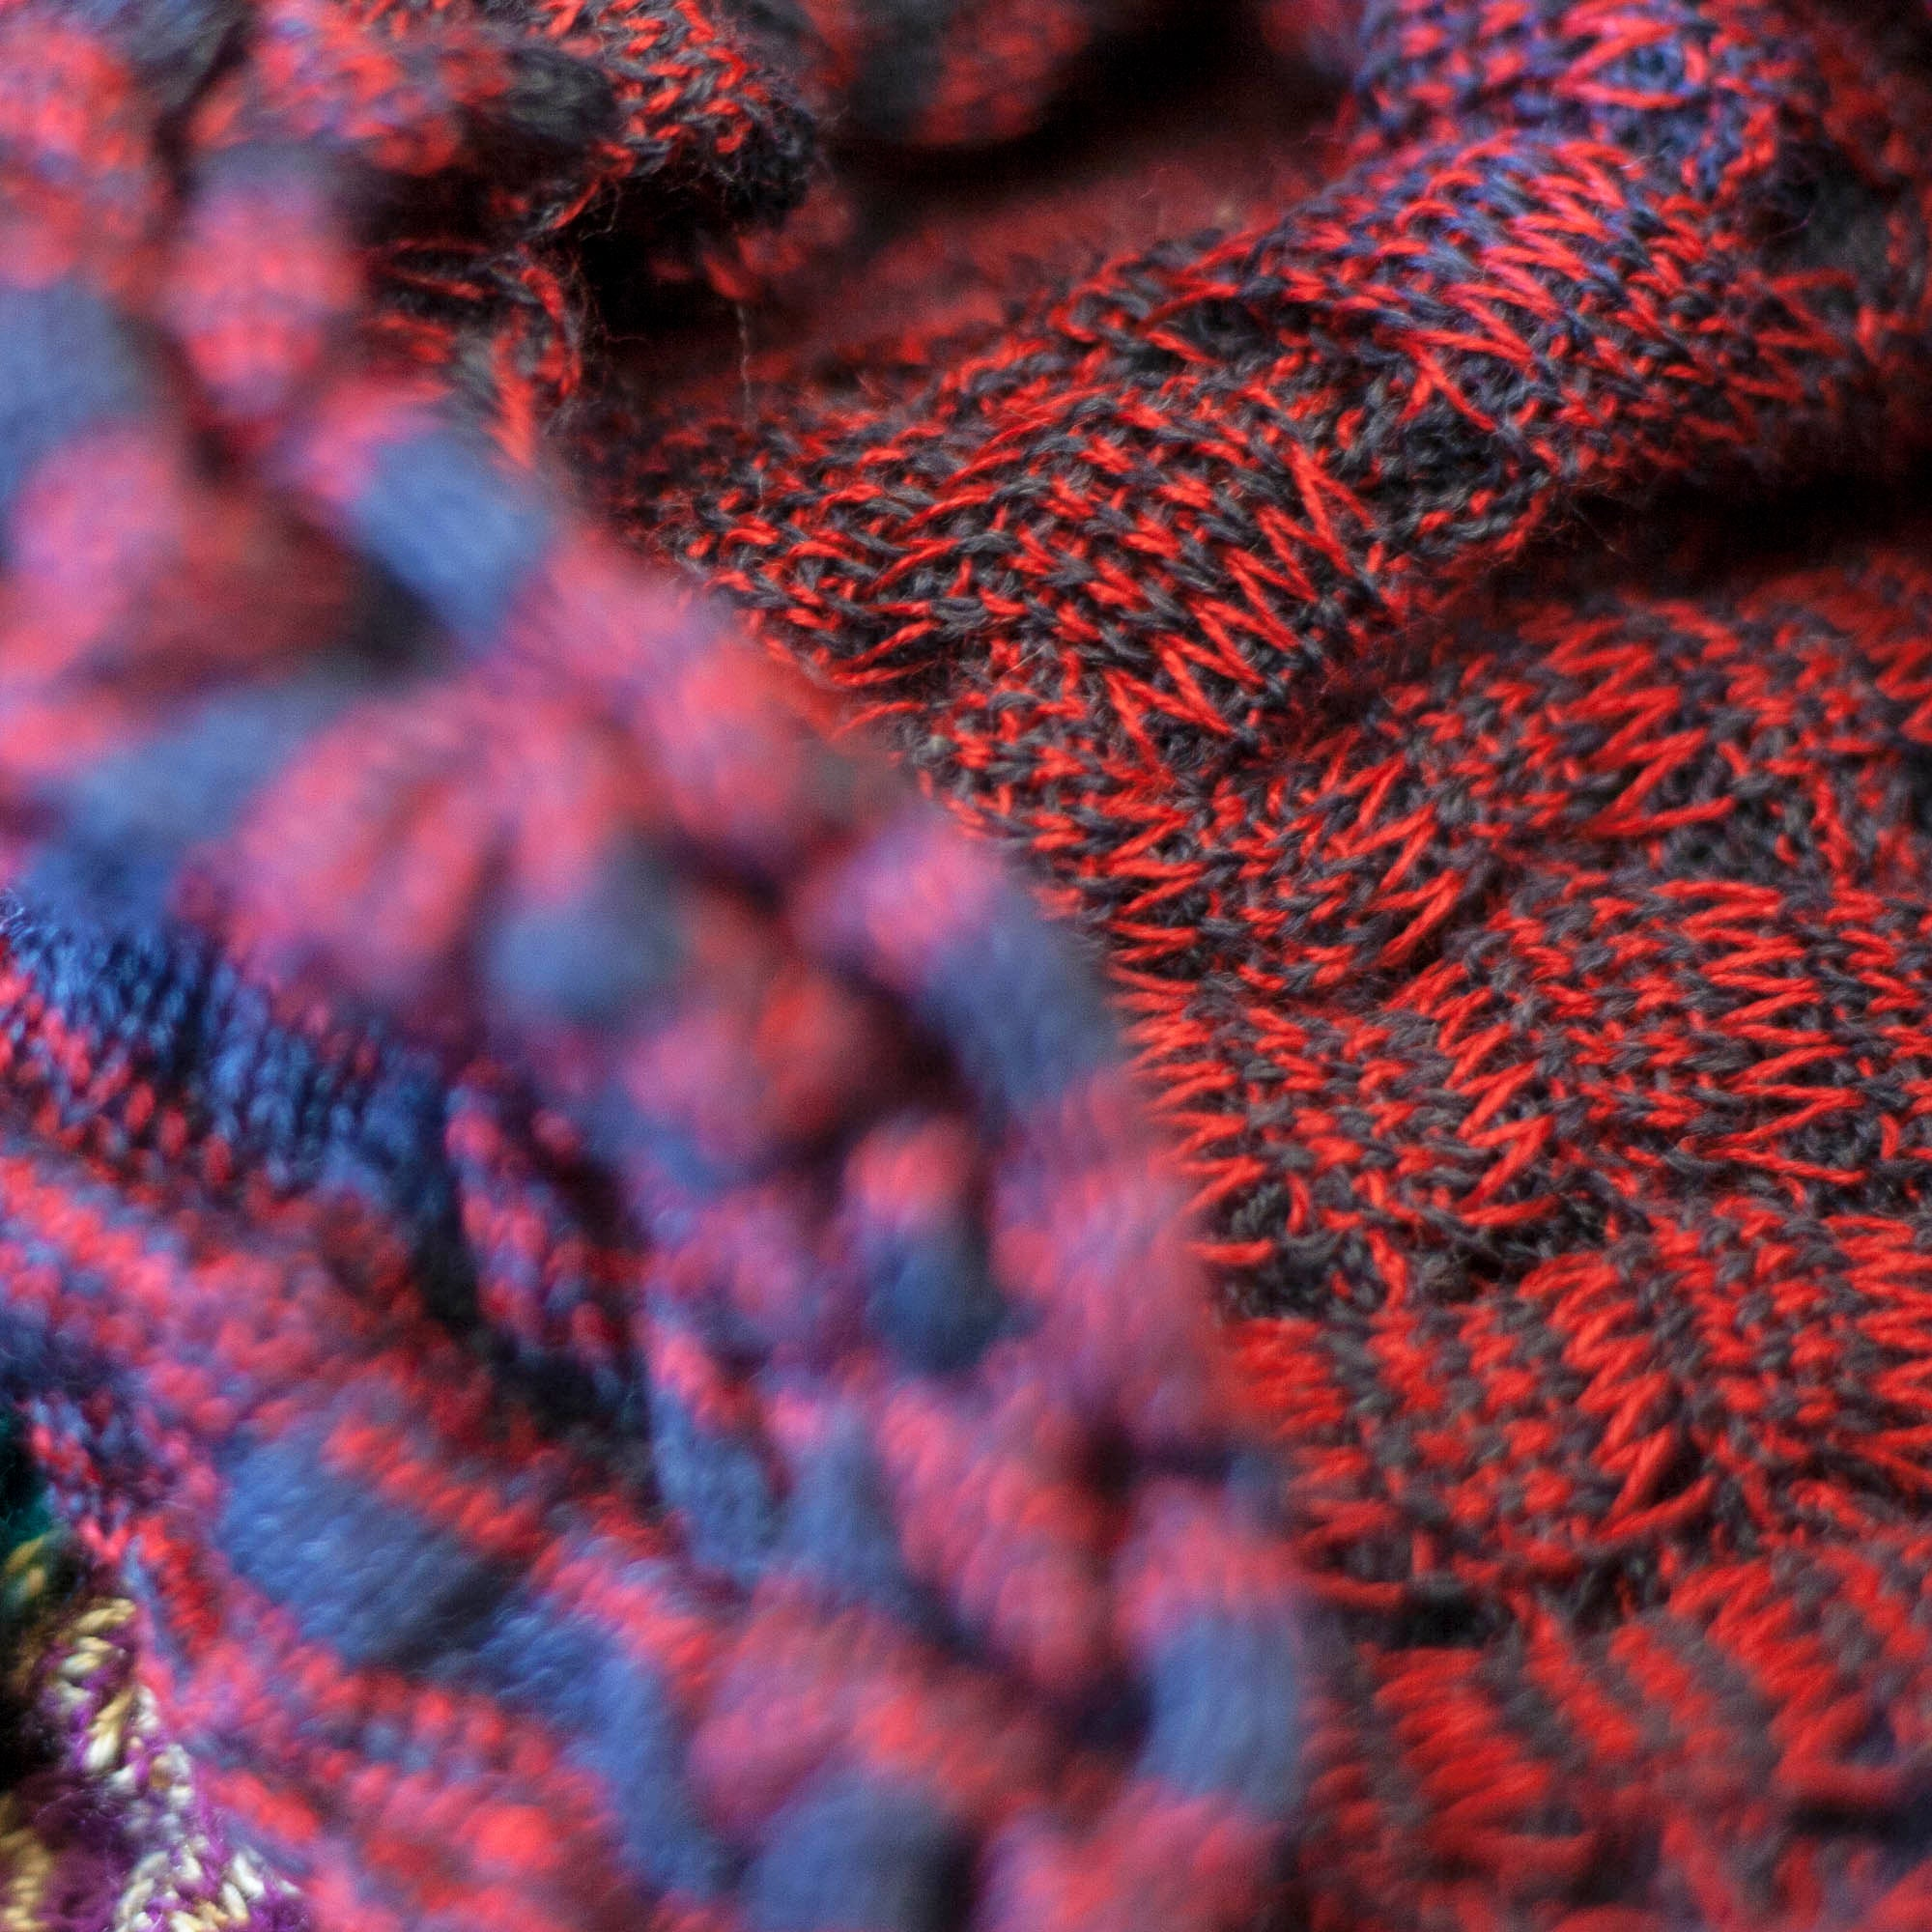 detail and back of rigg vaarie jacket. Red and blue stripes in a ridged, scrunchy textile